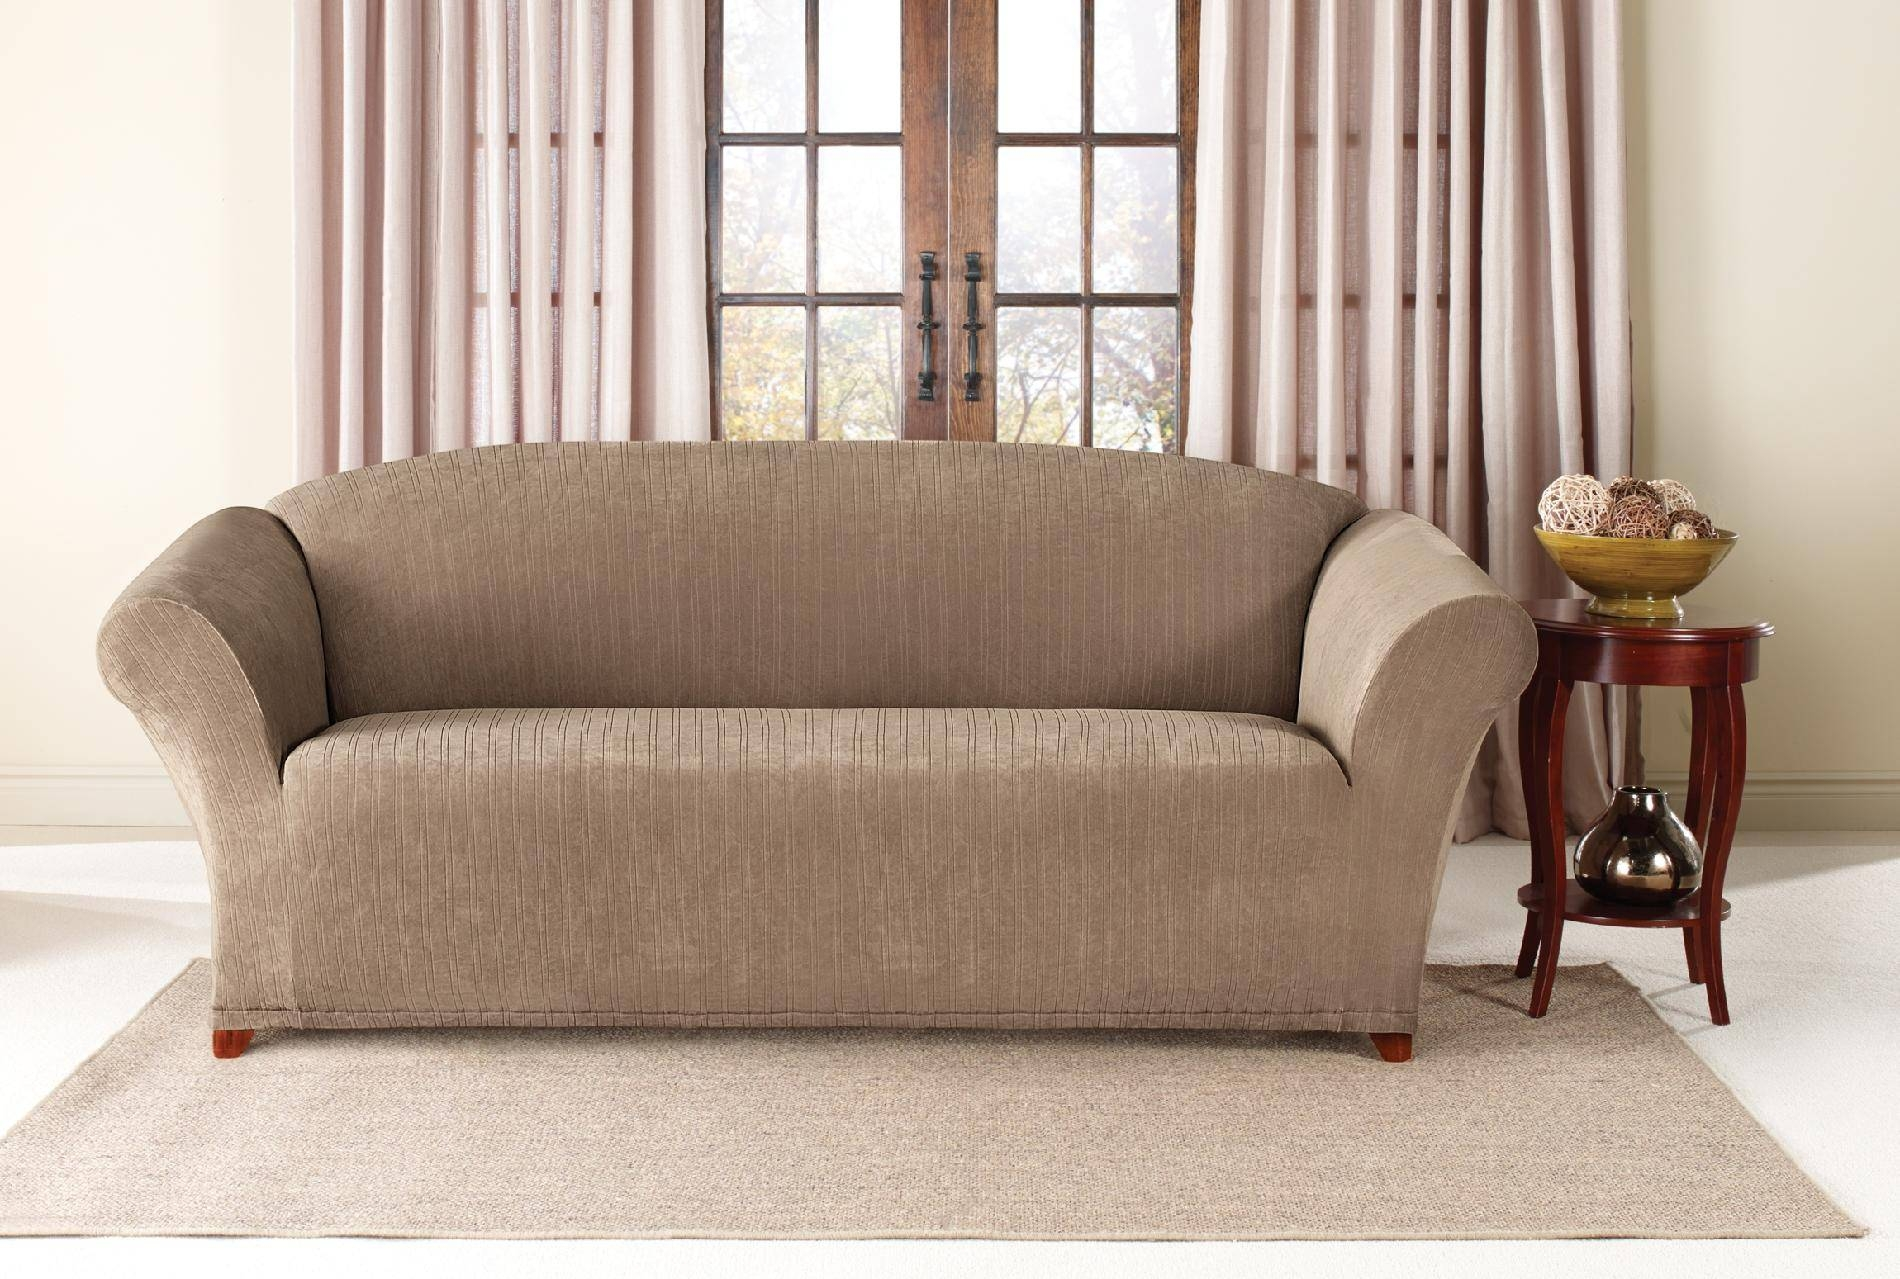 Furniture: Classy Design Of Sure Fit Sofa Slipcovers For Inspiring within 2 Piece Sofa Covers (Image 12 of 30)